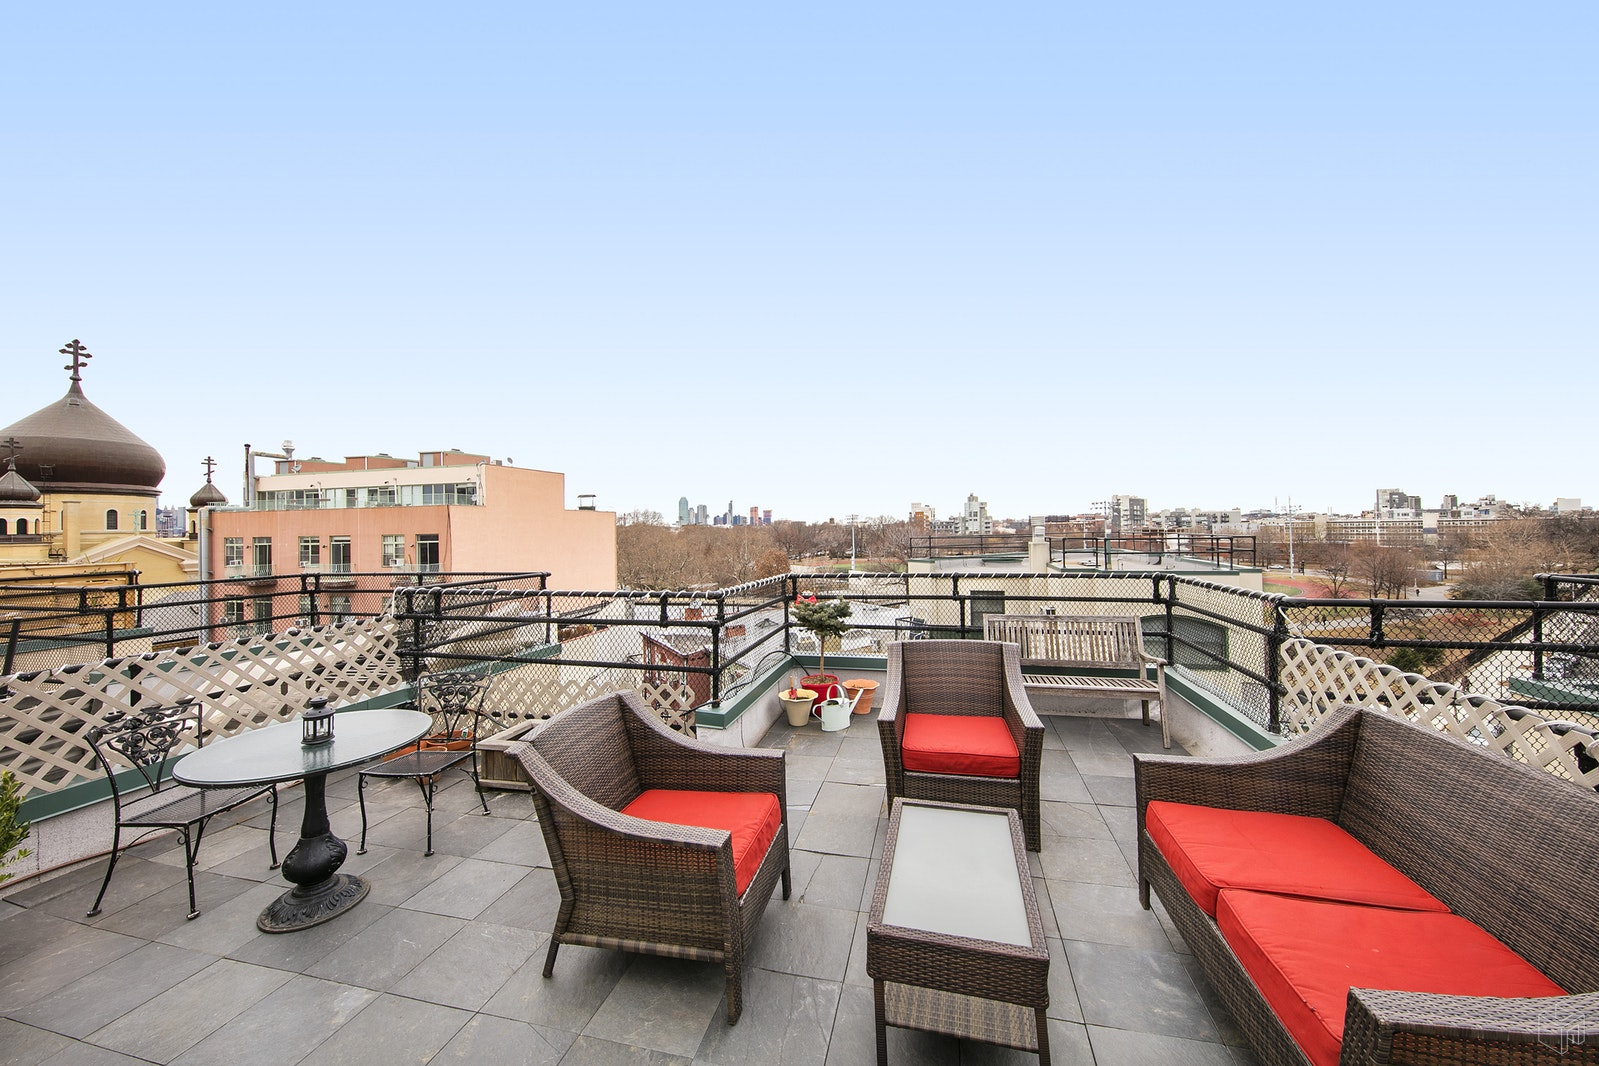 223 NORTH 11TH STREET PH, Brooklyn, $1,499,000, Web #: 16014956